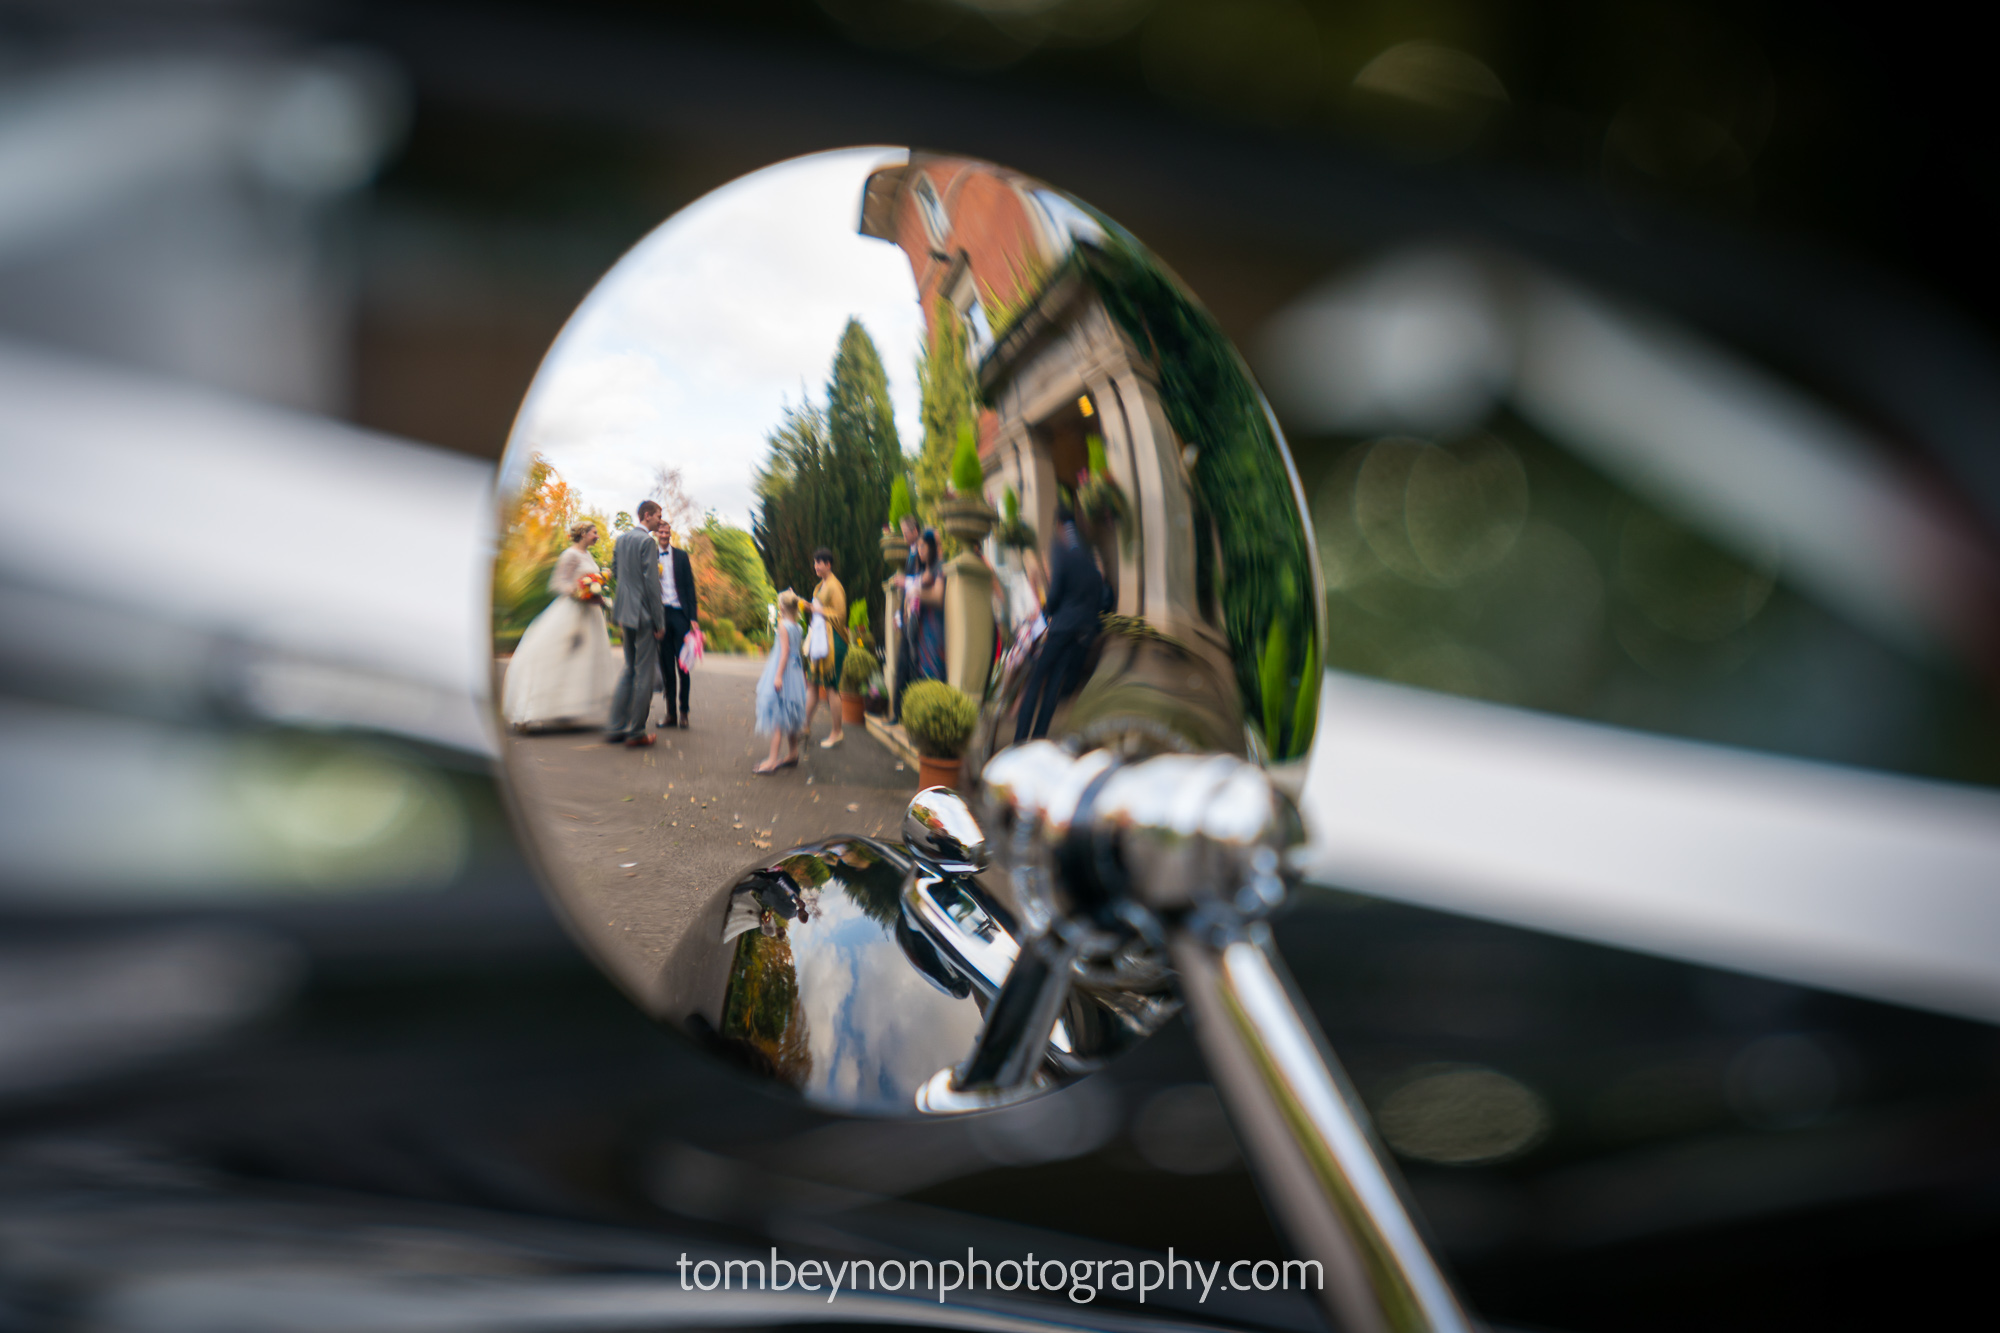 Reflection in the back of car wing mirror